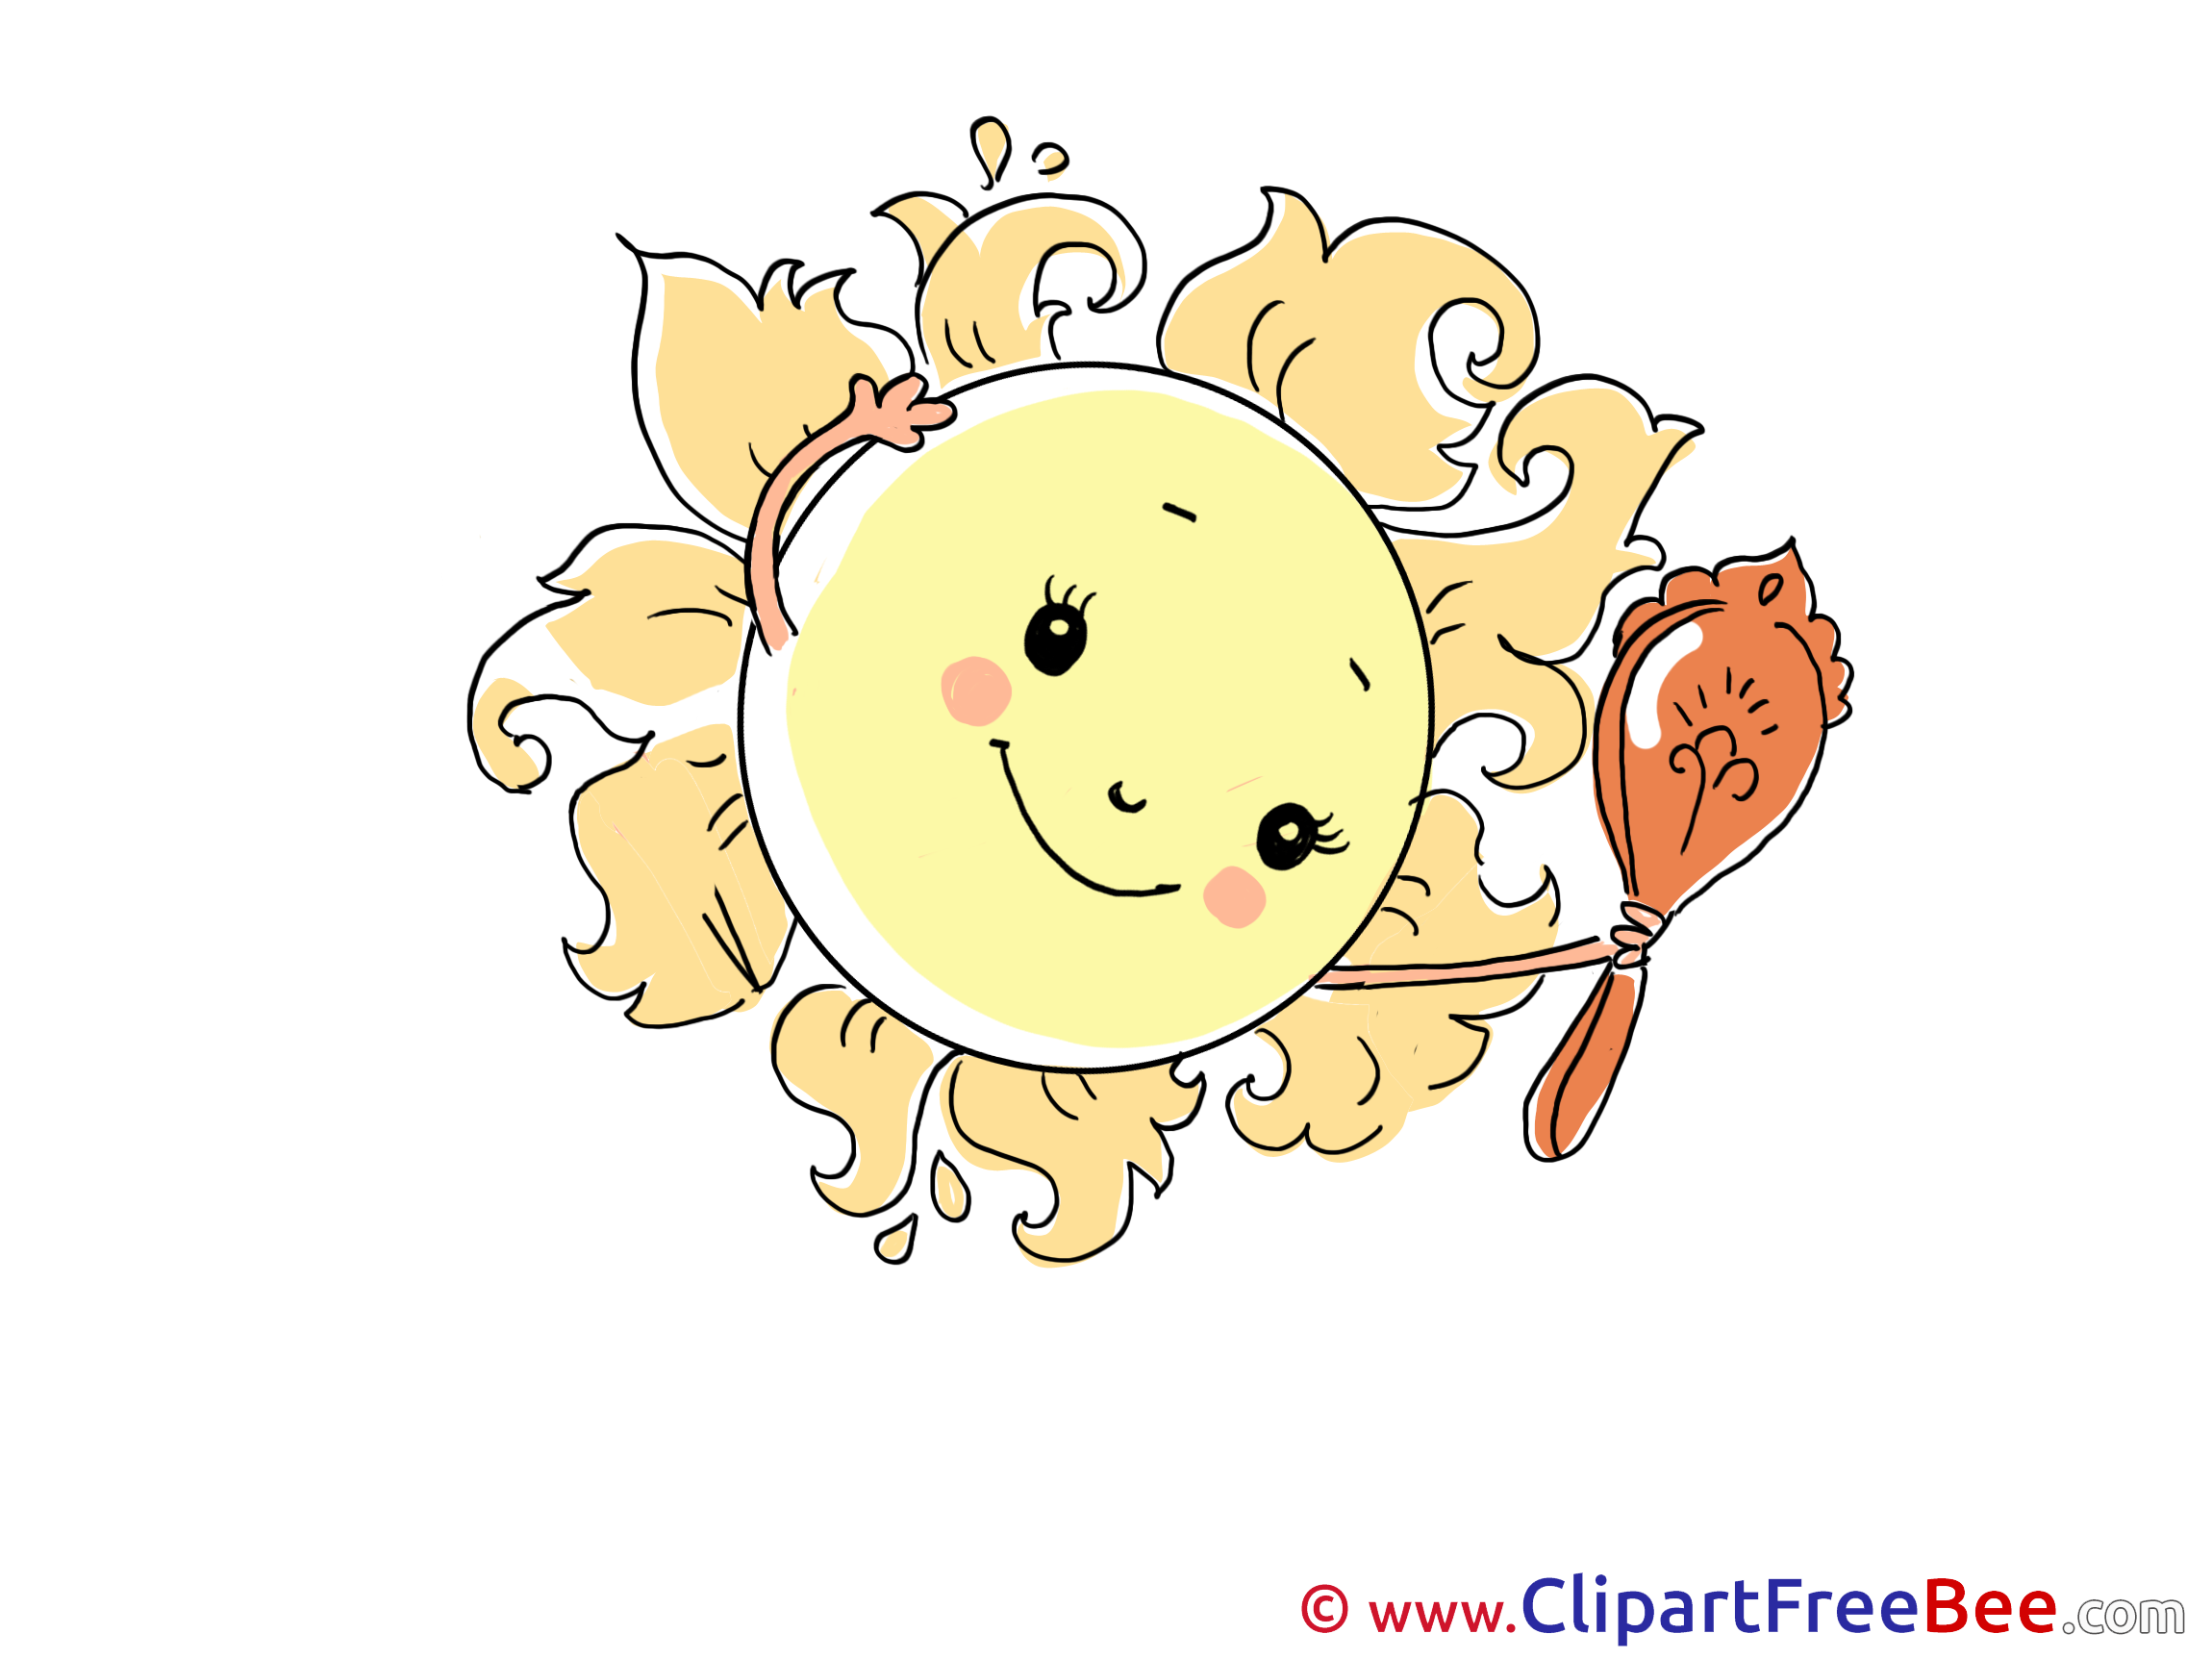 Mirror Sun Weather free printable Cliparts and Images